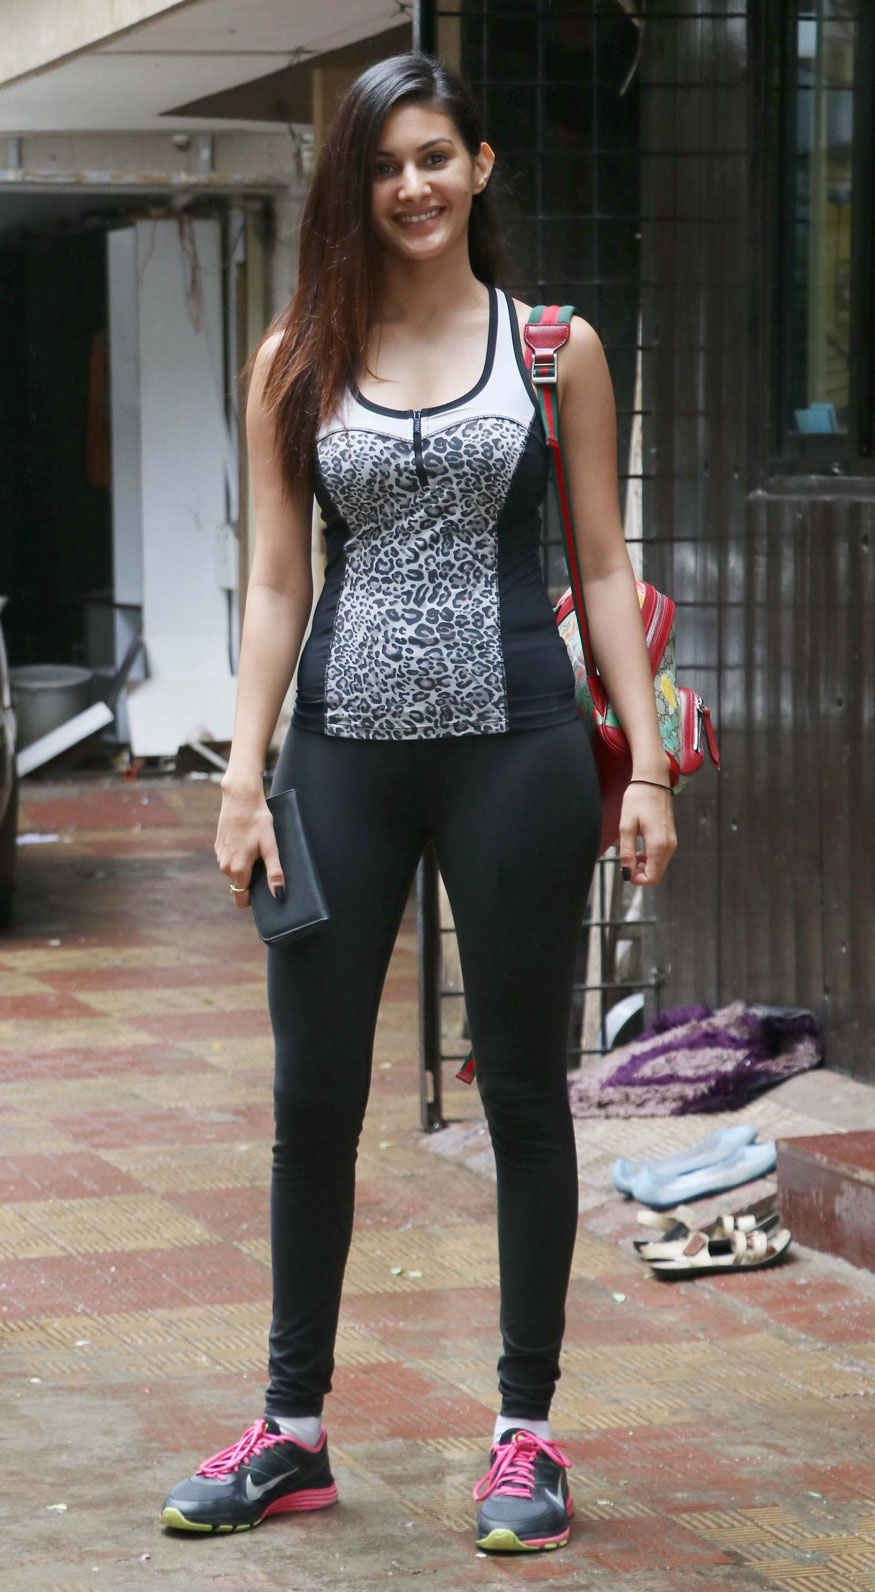 in spandex girls Indian